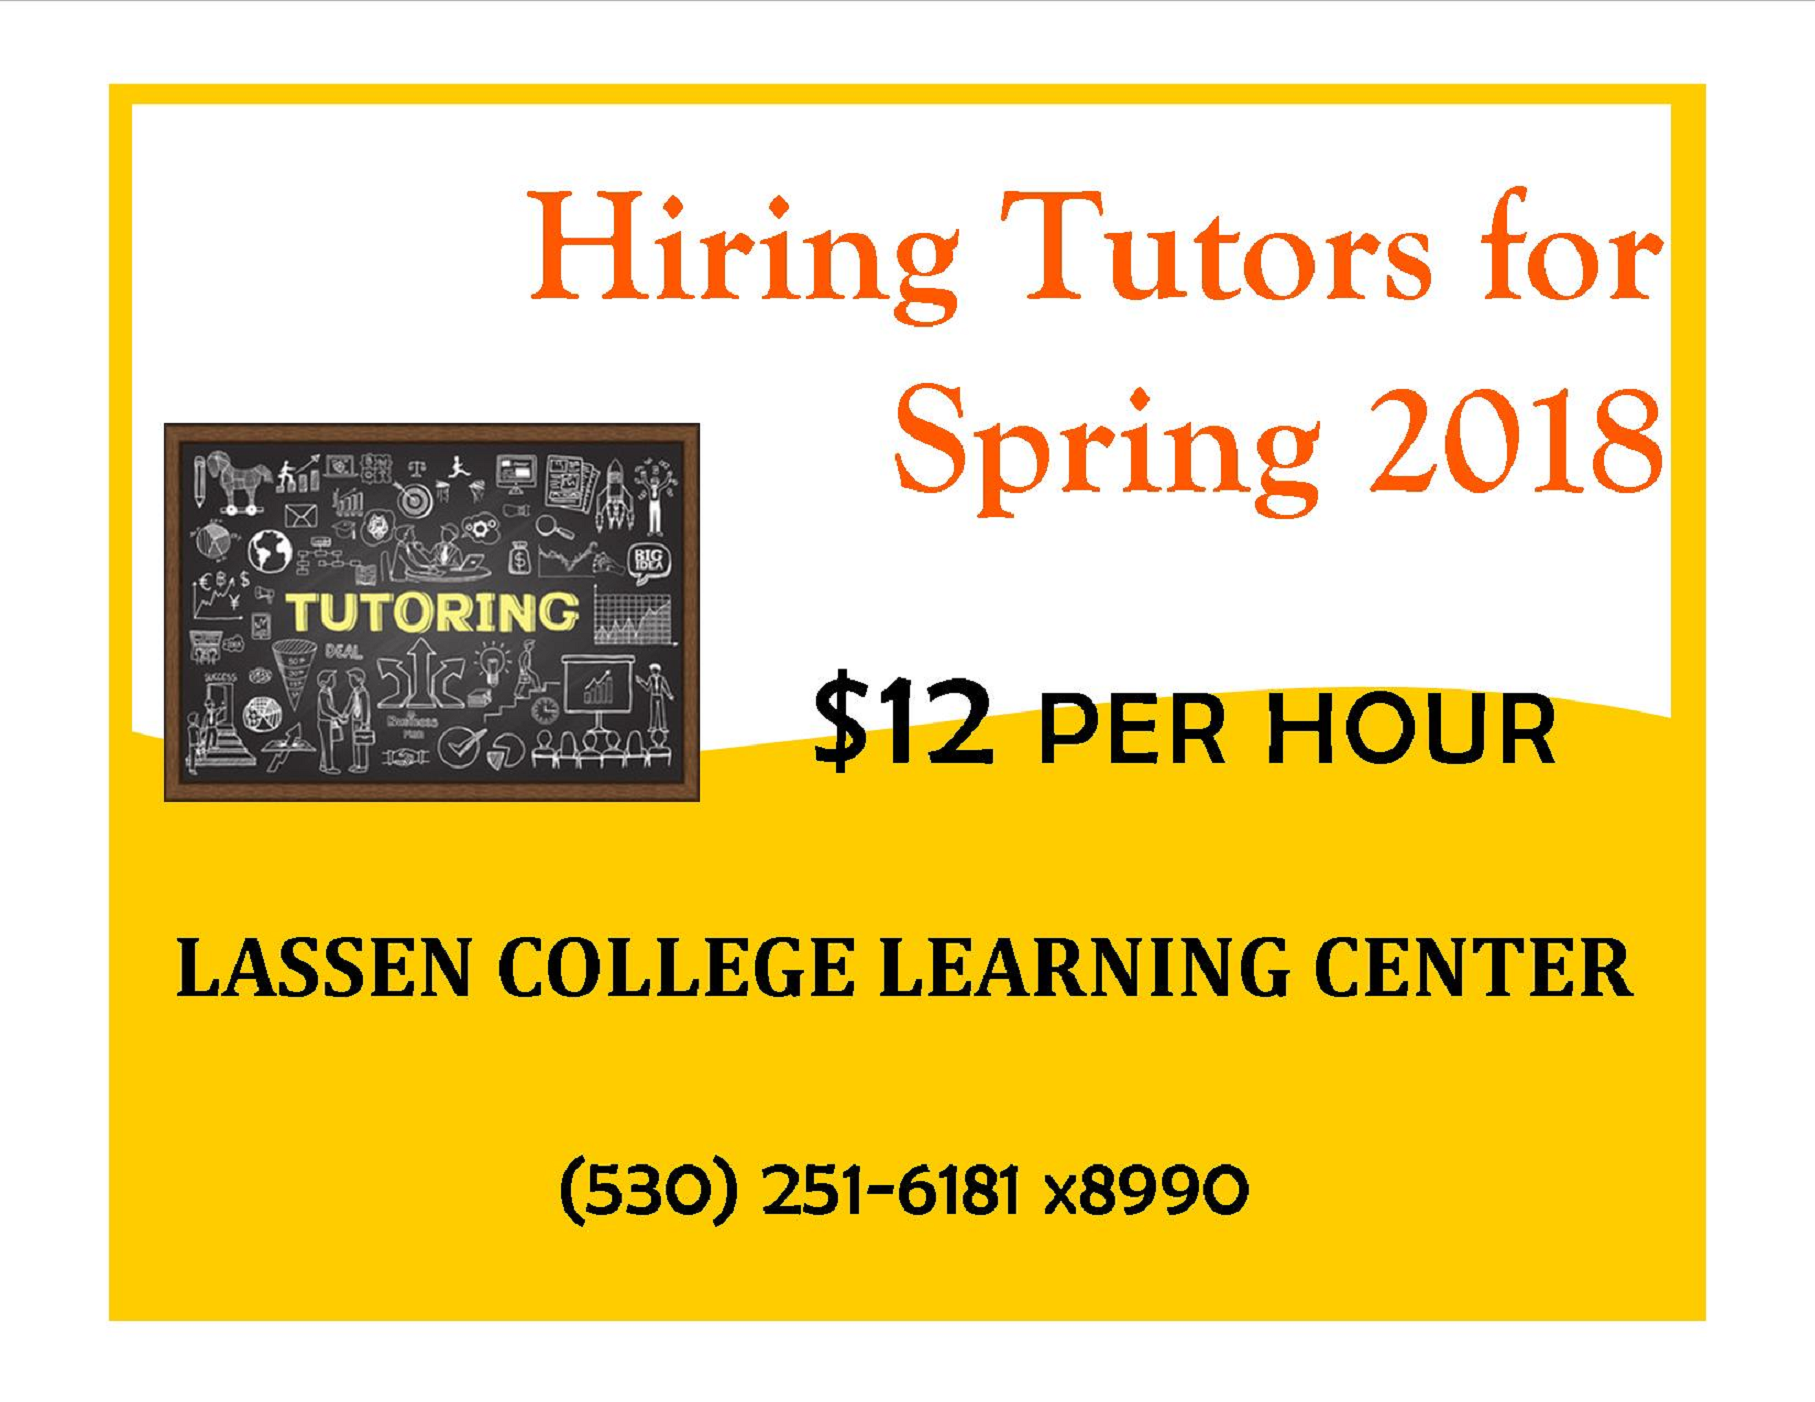 Hiring Spring 2018 Tutors